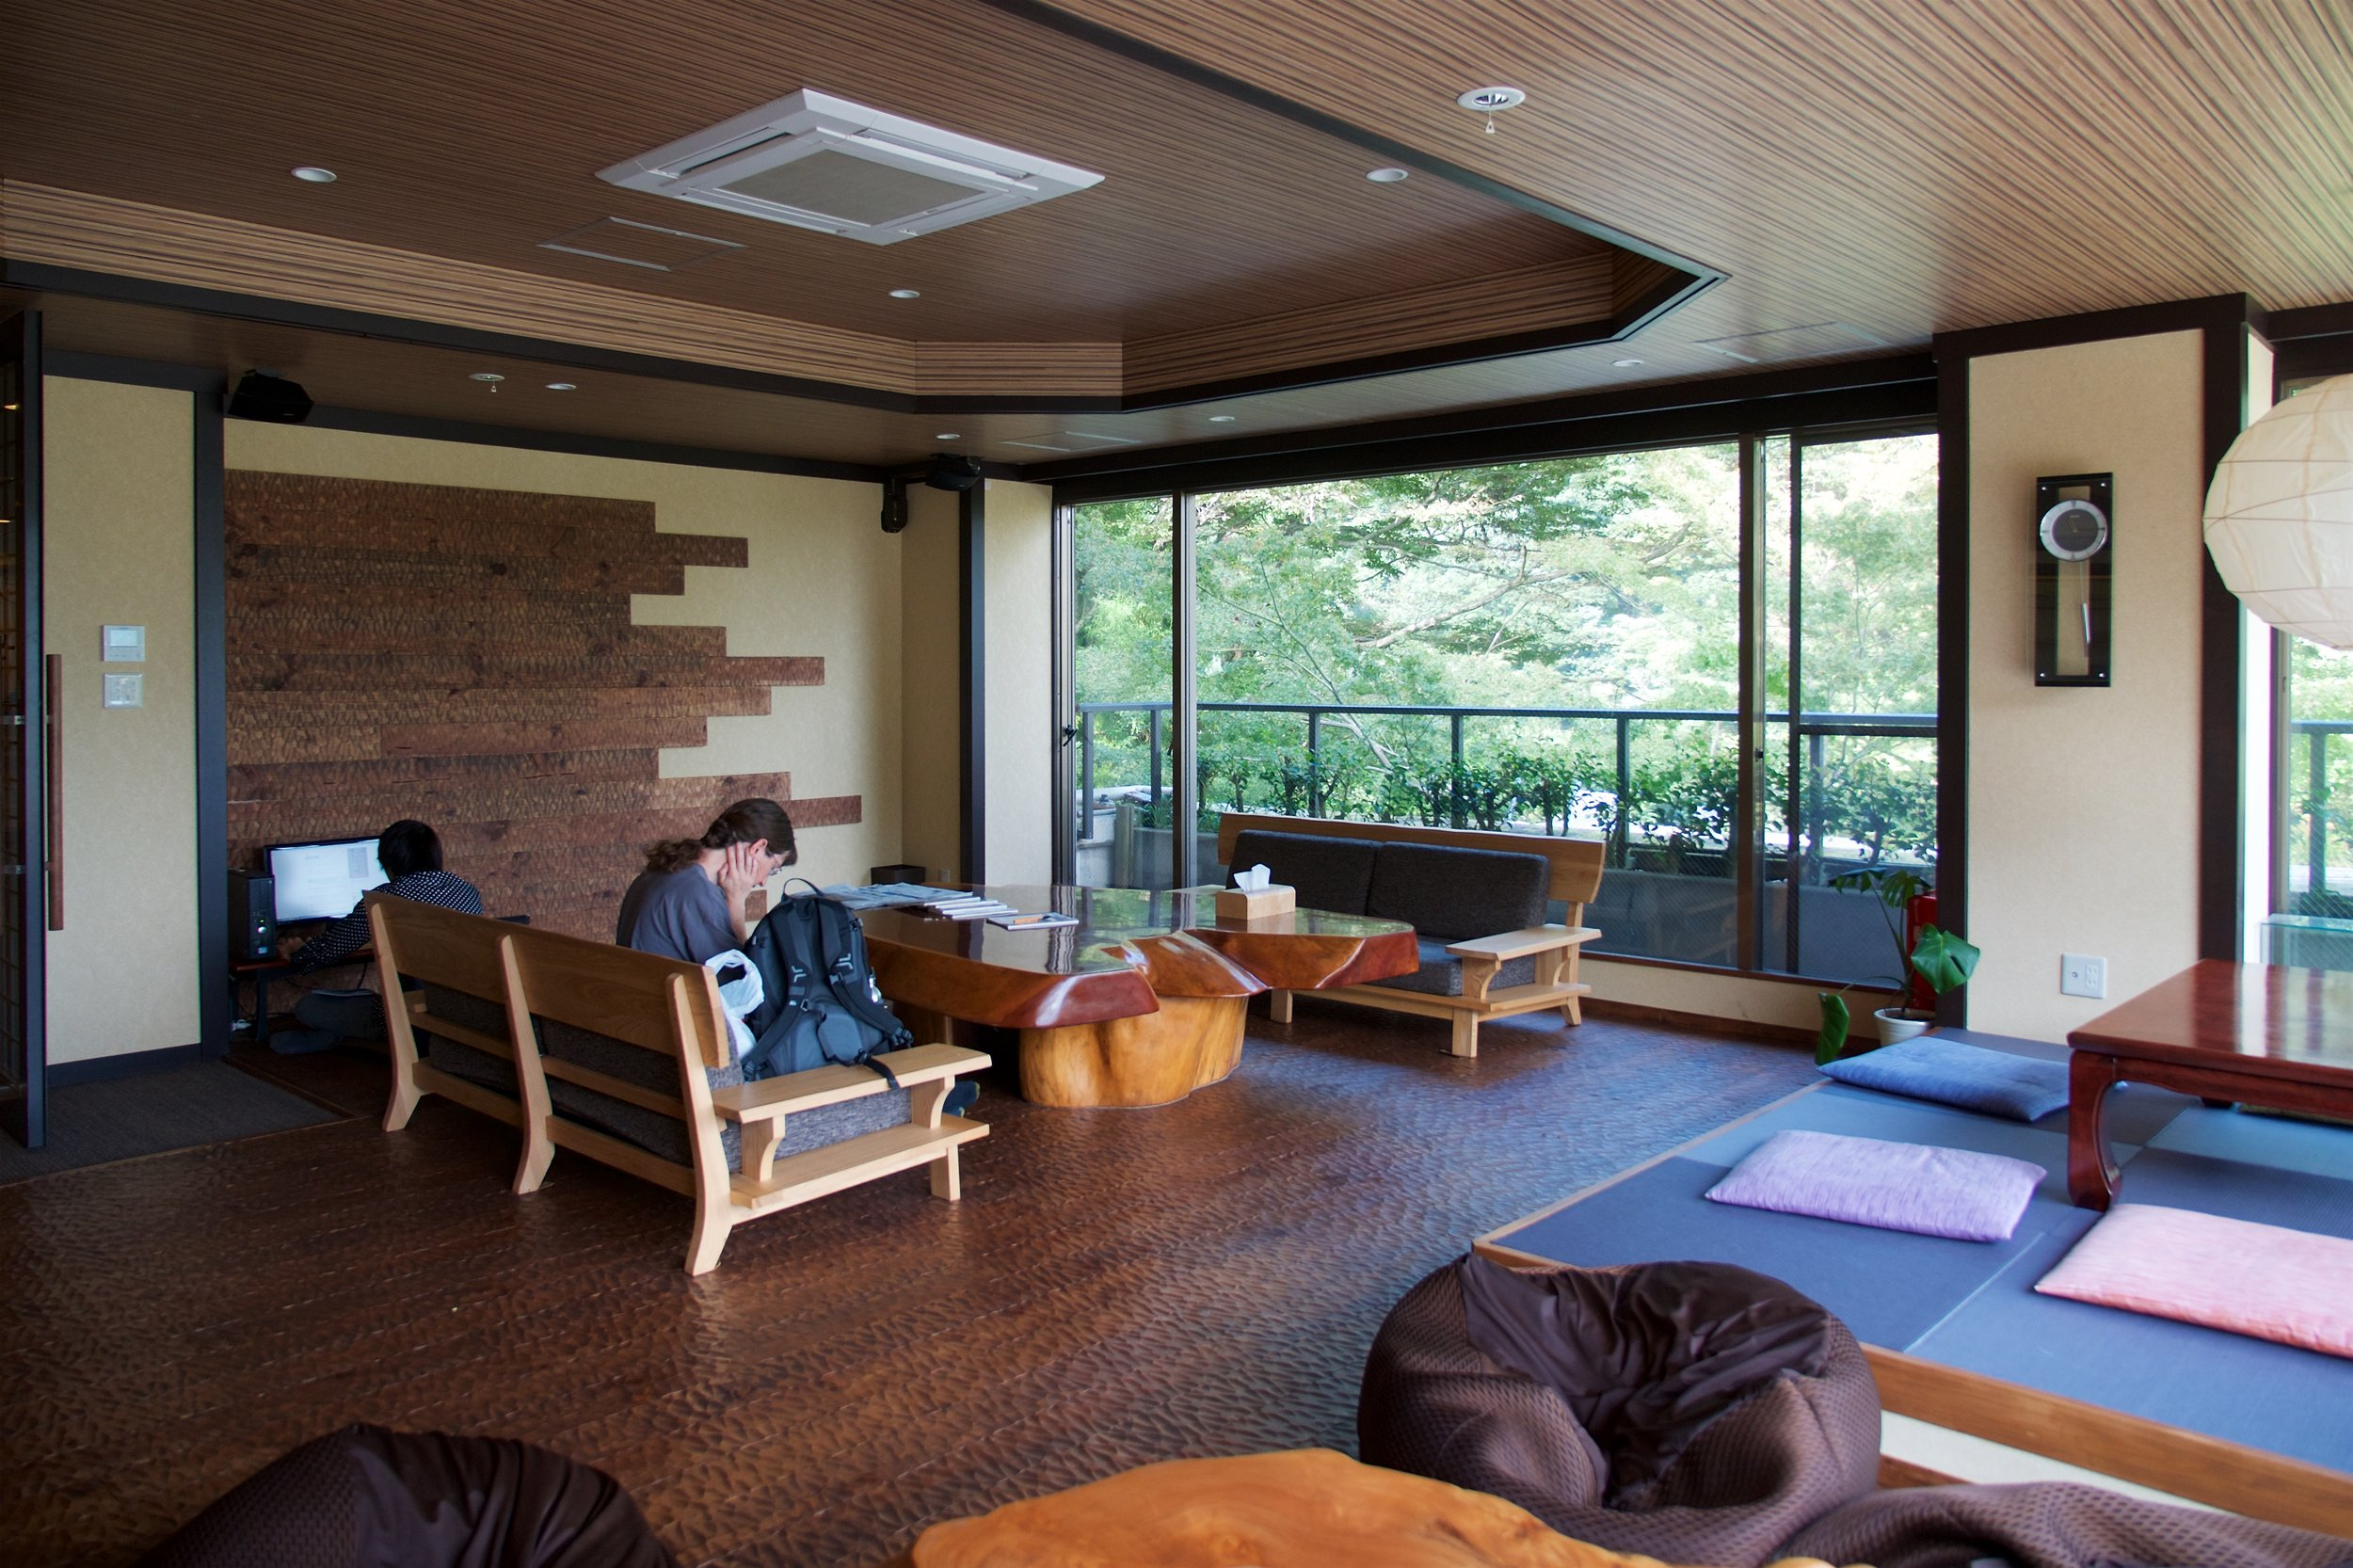 Common room in the hostel